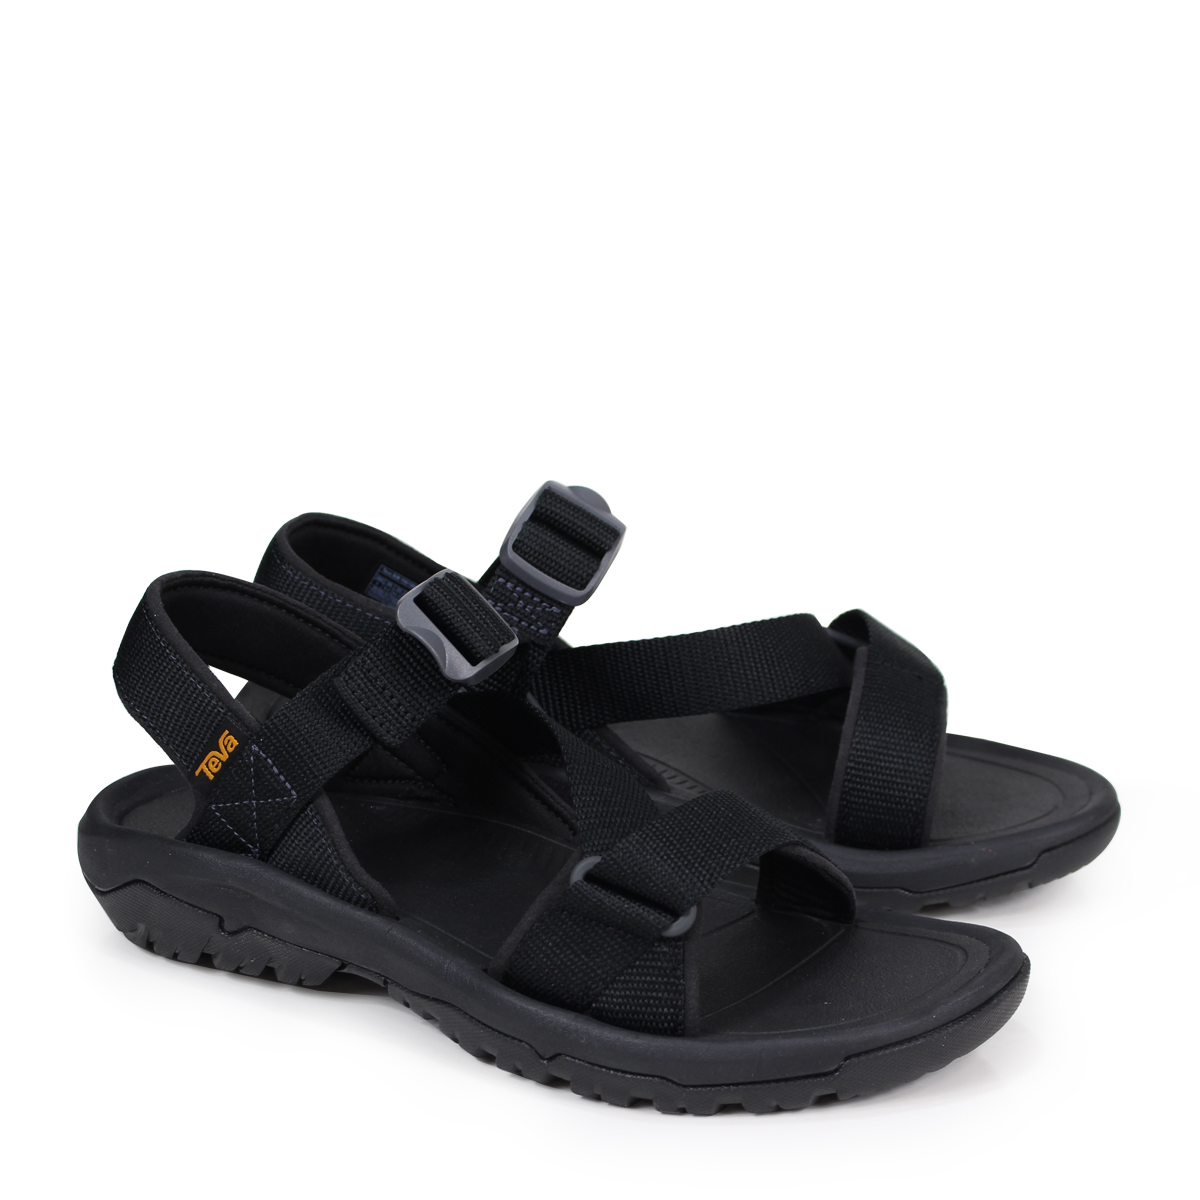 6940b5e336ad ALLSPORTS  Teva HURRICANE CROSS STRAP Teva sandals men hurricane ...